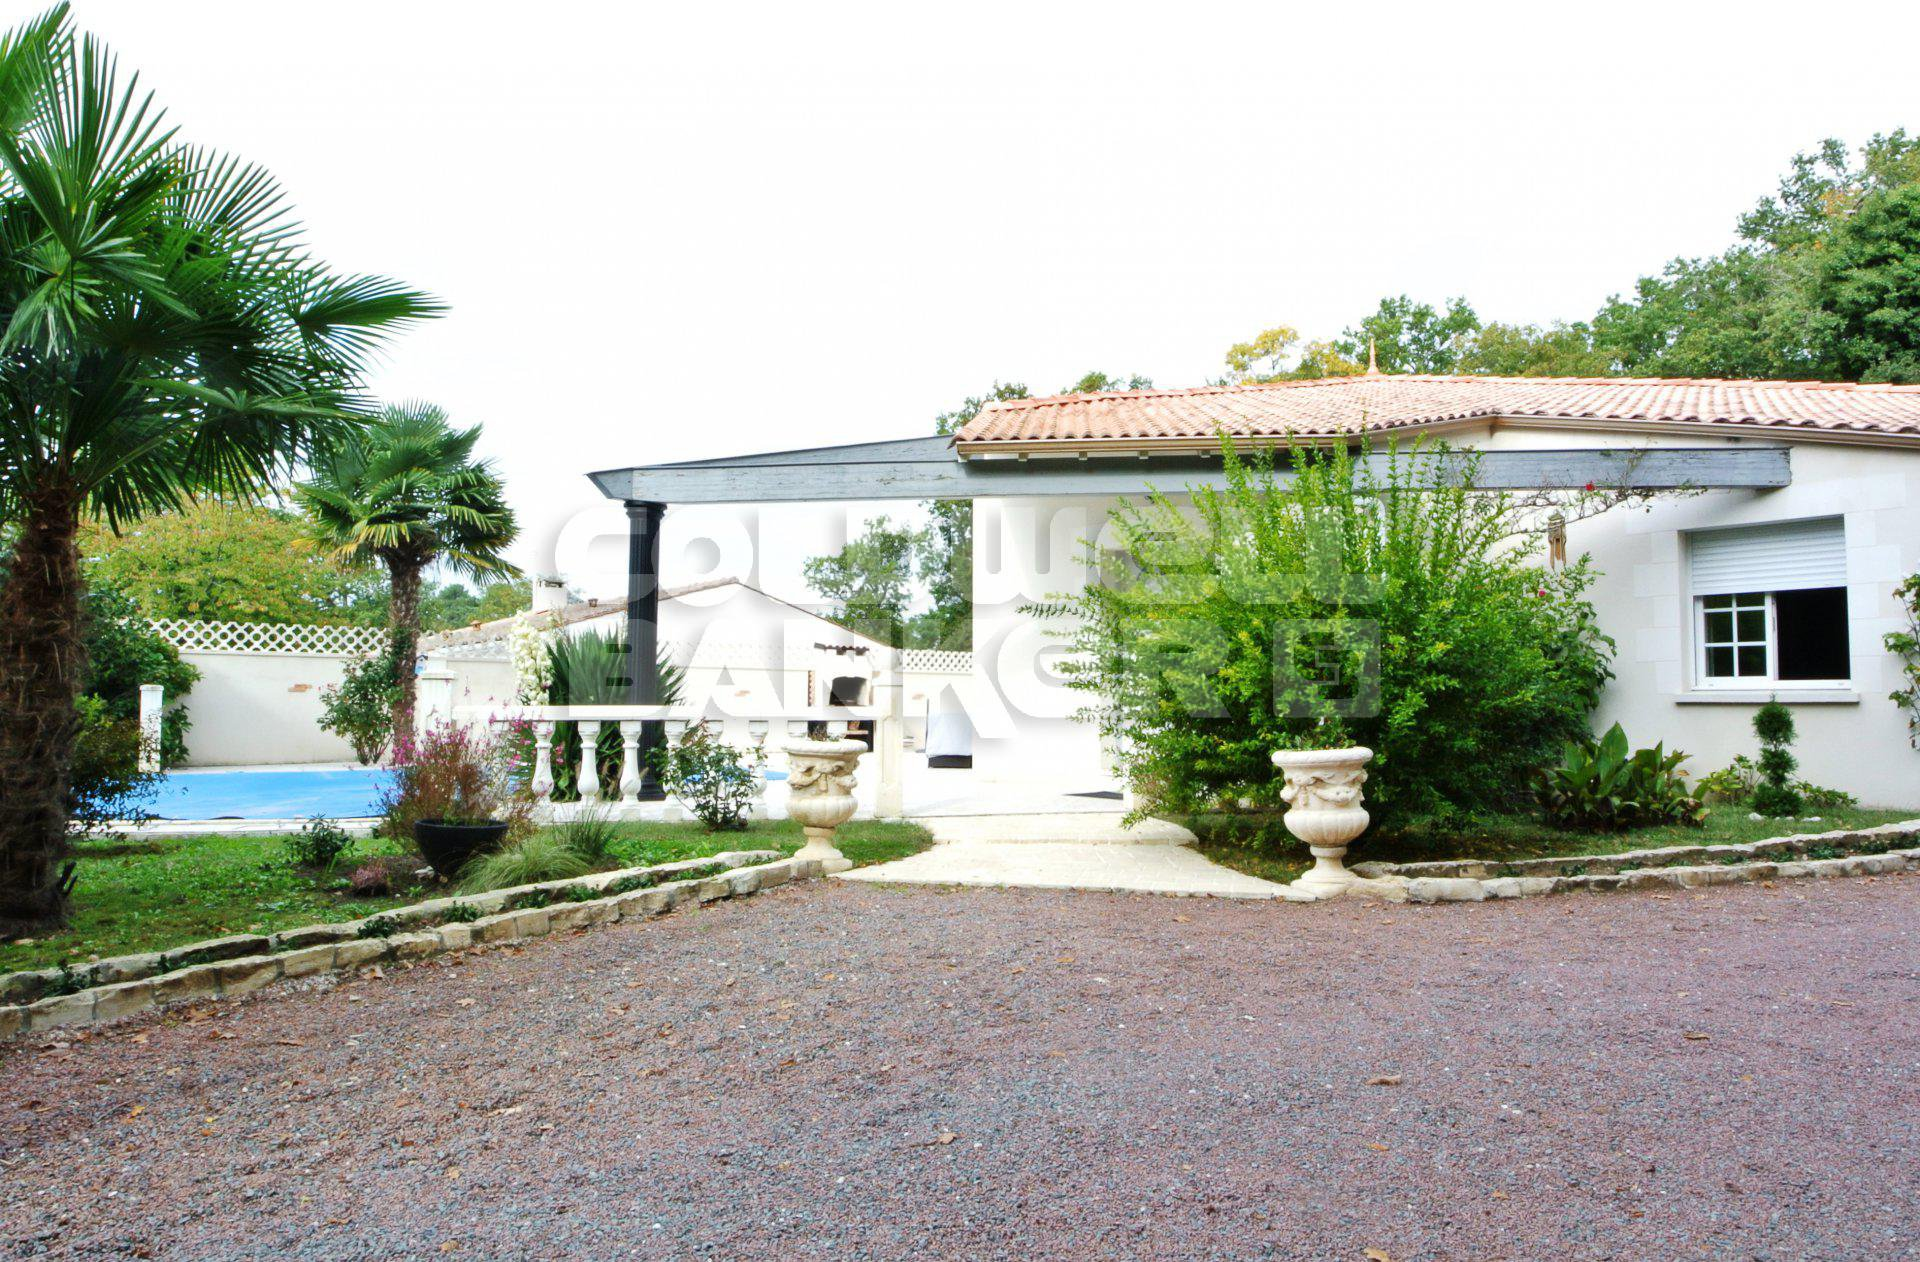 For Sale - CHAILLEVETTE - Contemorary House and Pool